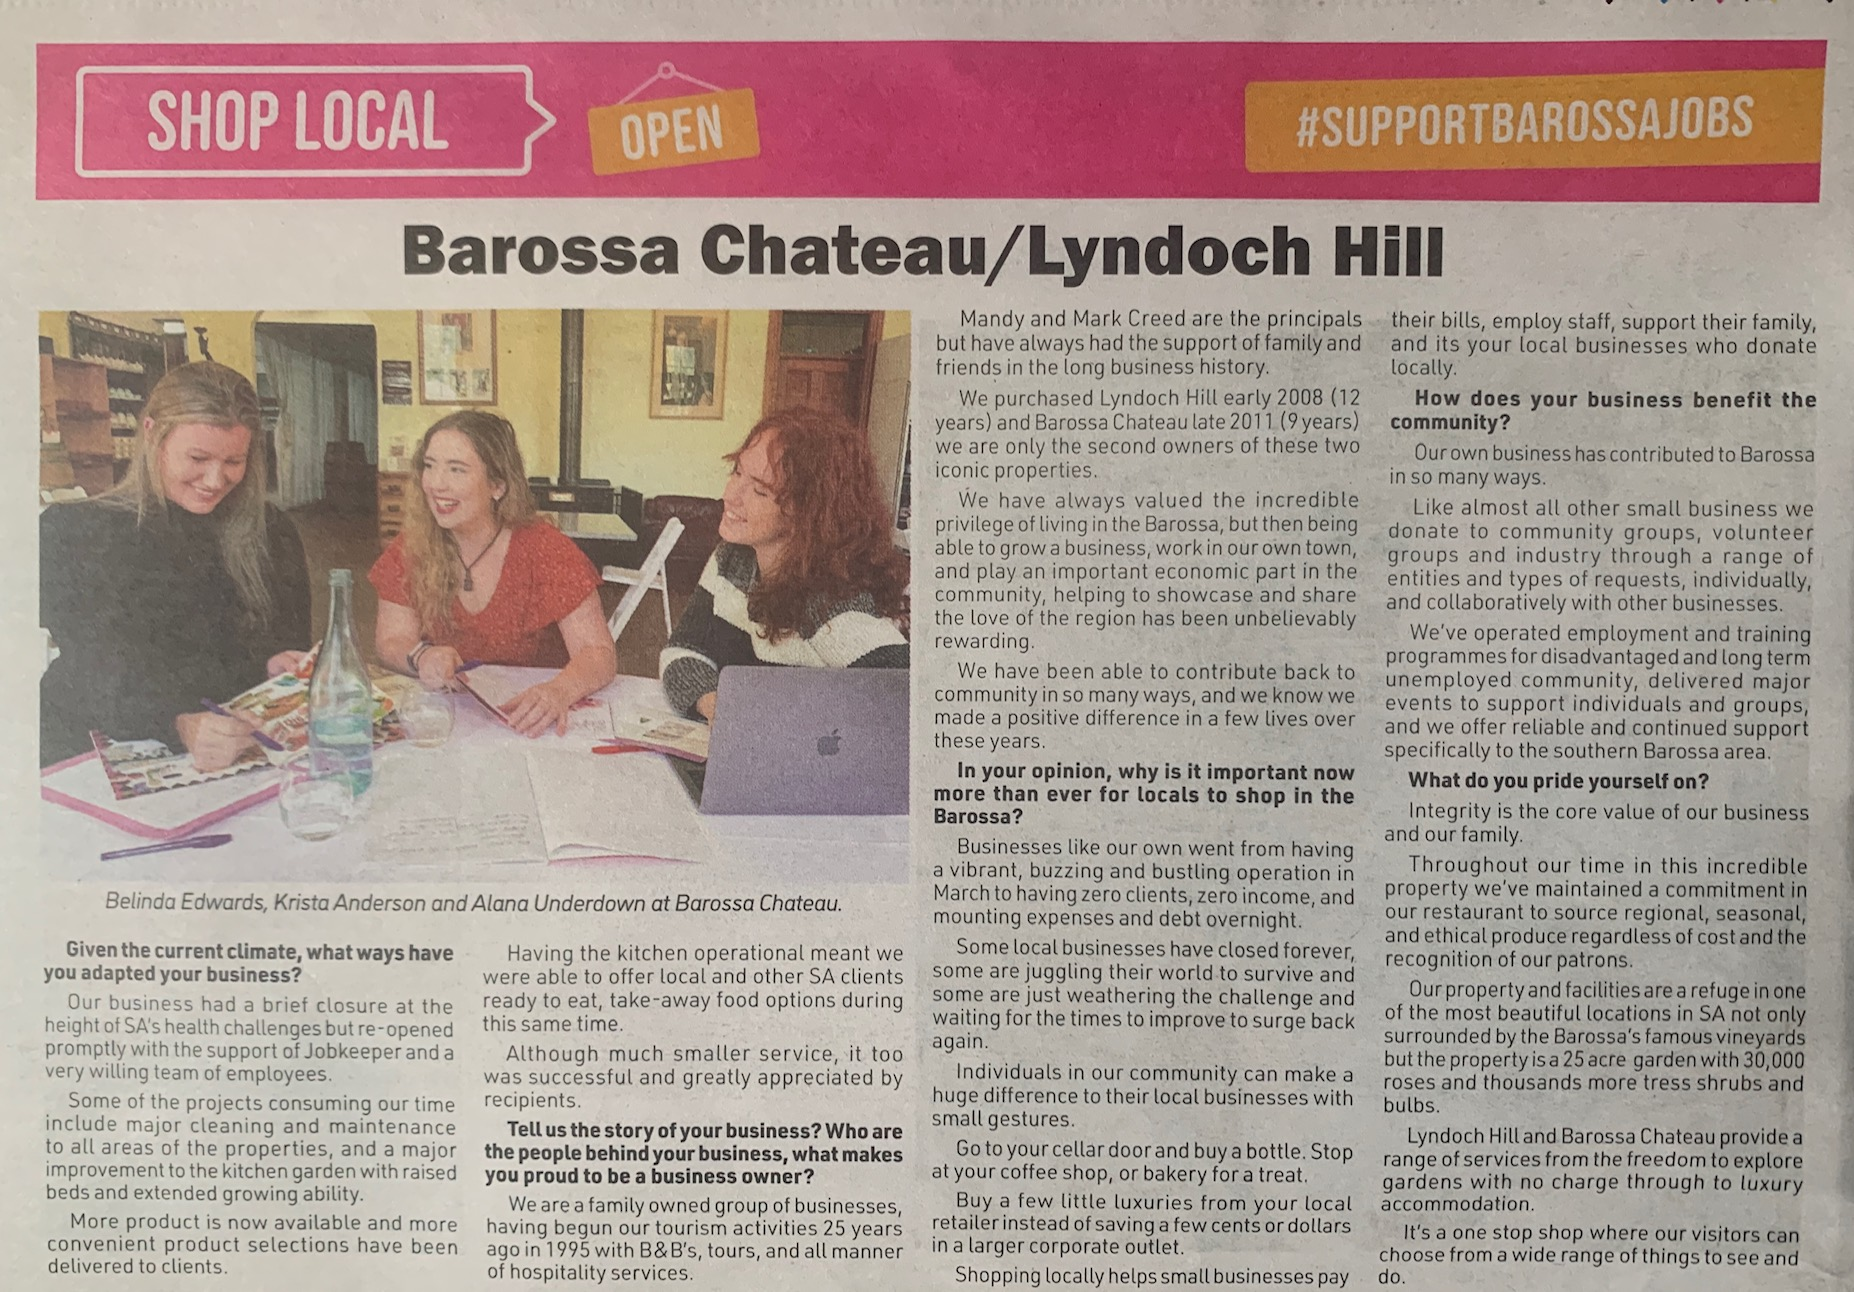 Barossa Shop Local Q&A – The Leader